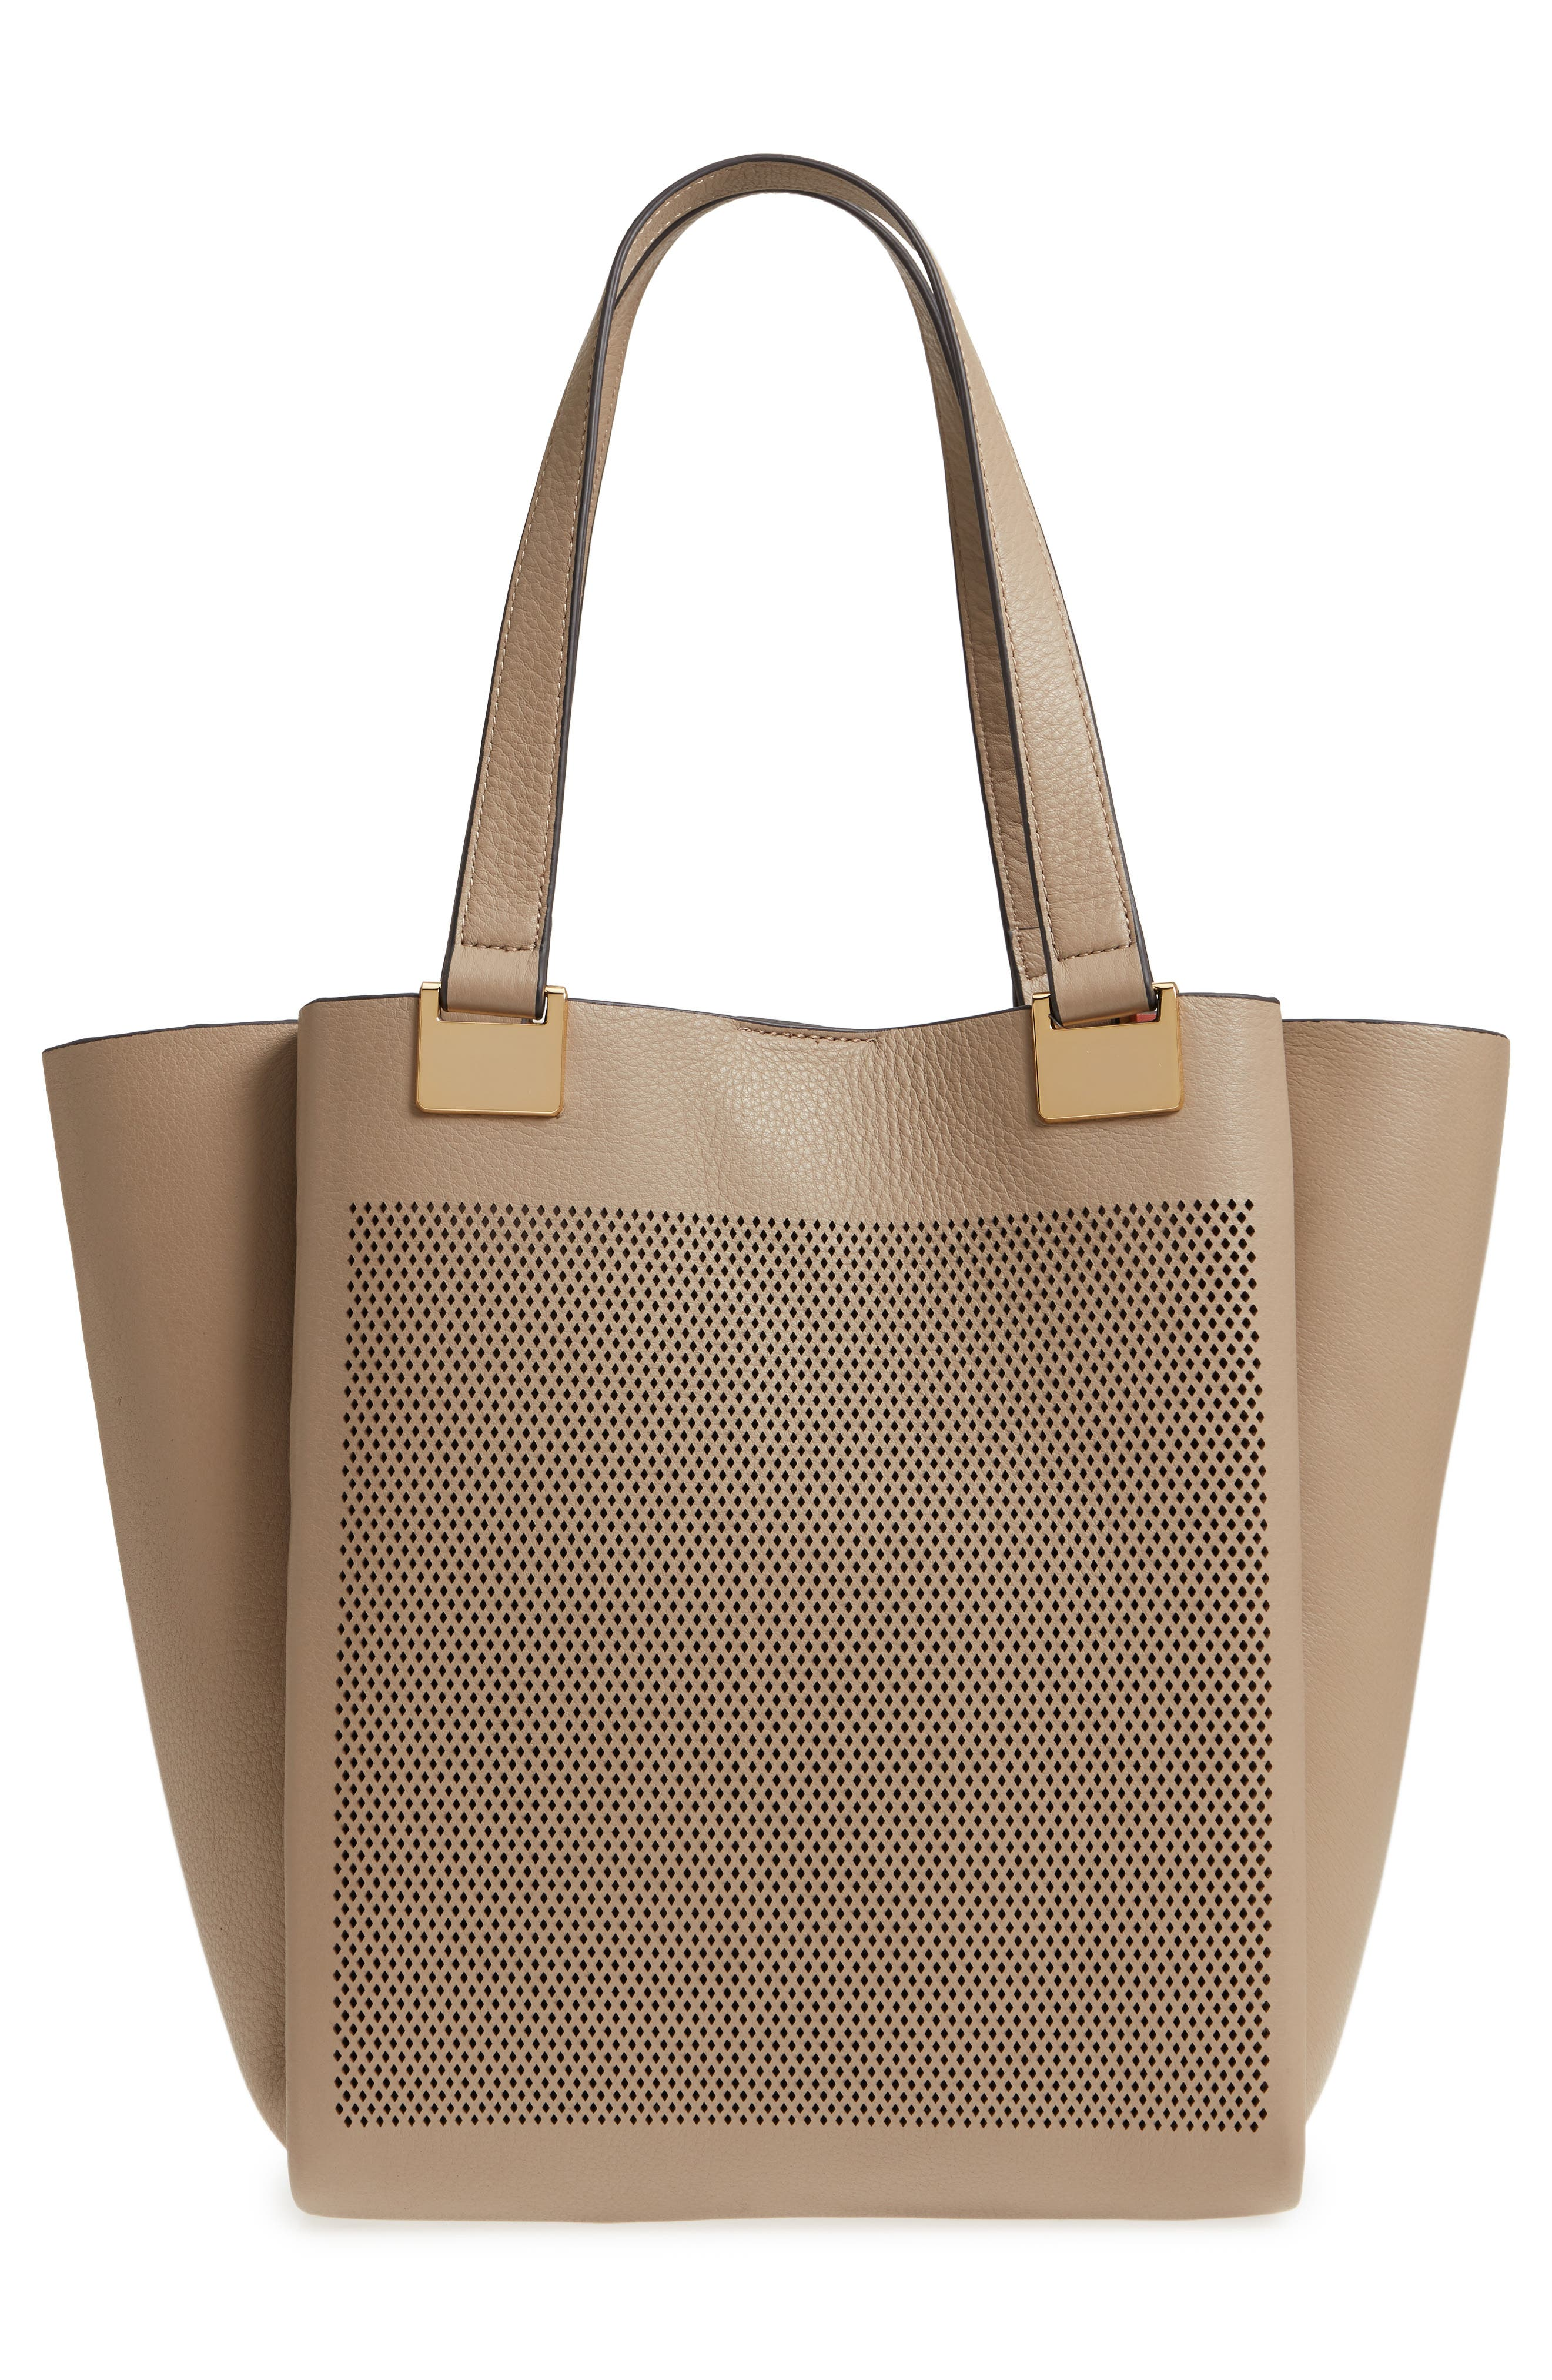 Beatt Perforated Leather Tote,                             Alternate thumbnail 3, color,                             Kangaroo/ Sushi